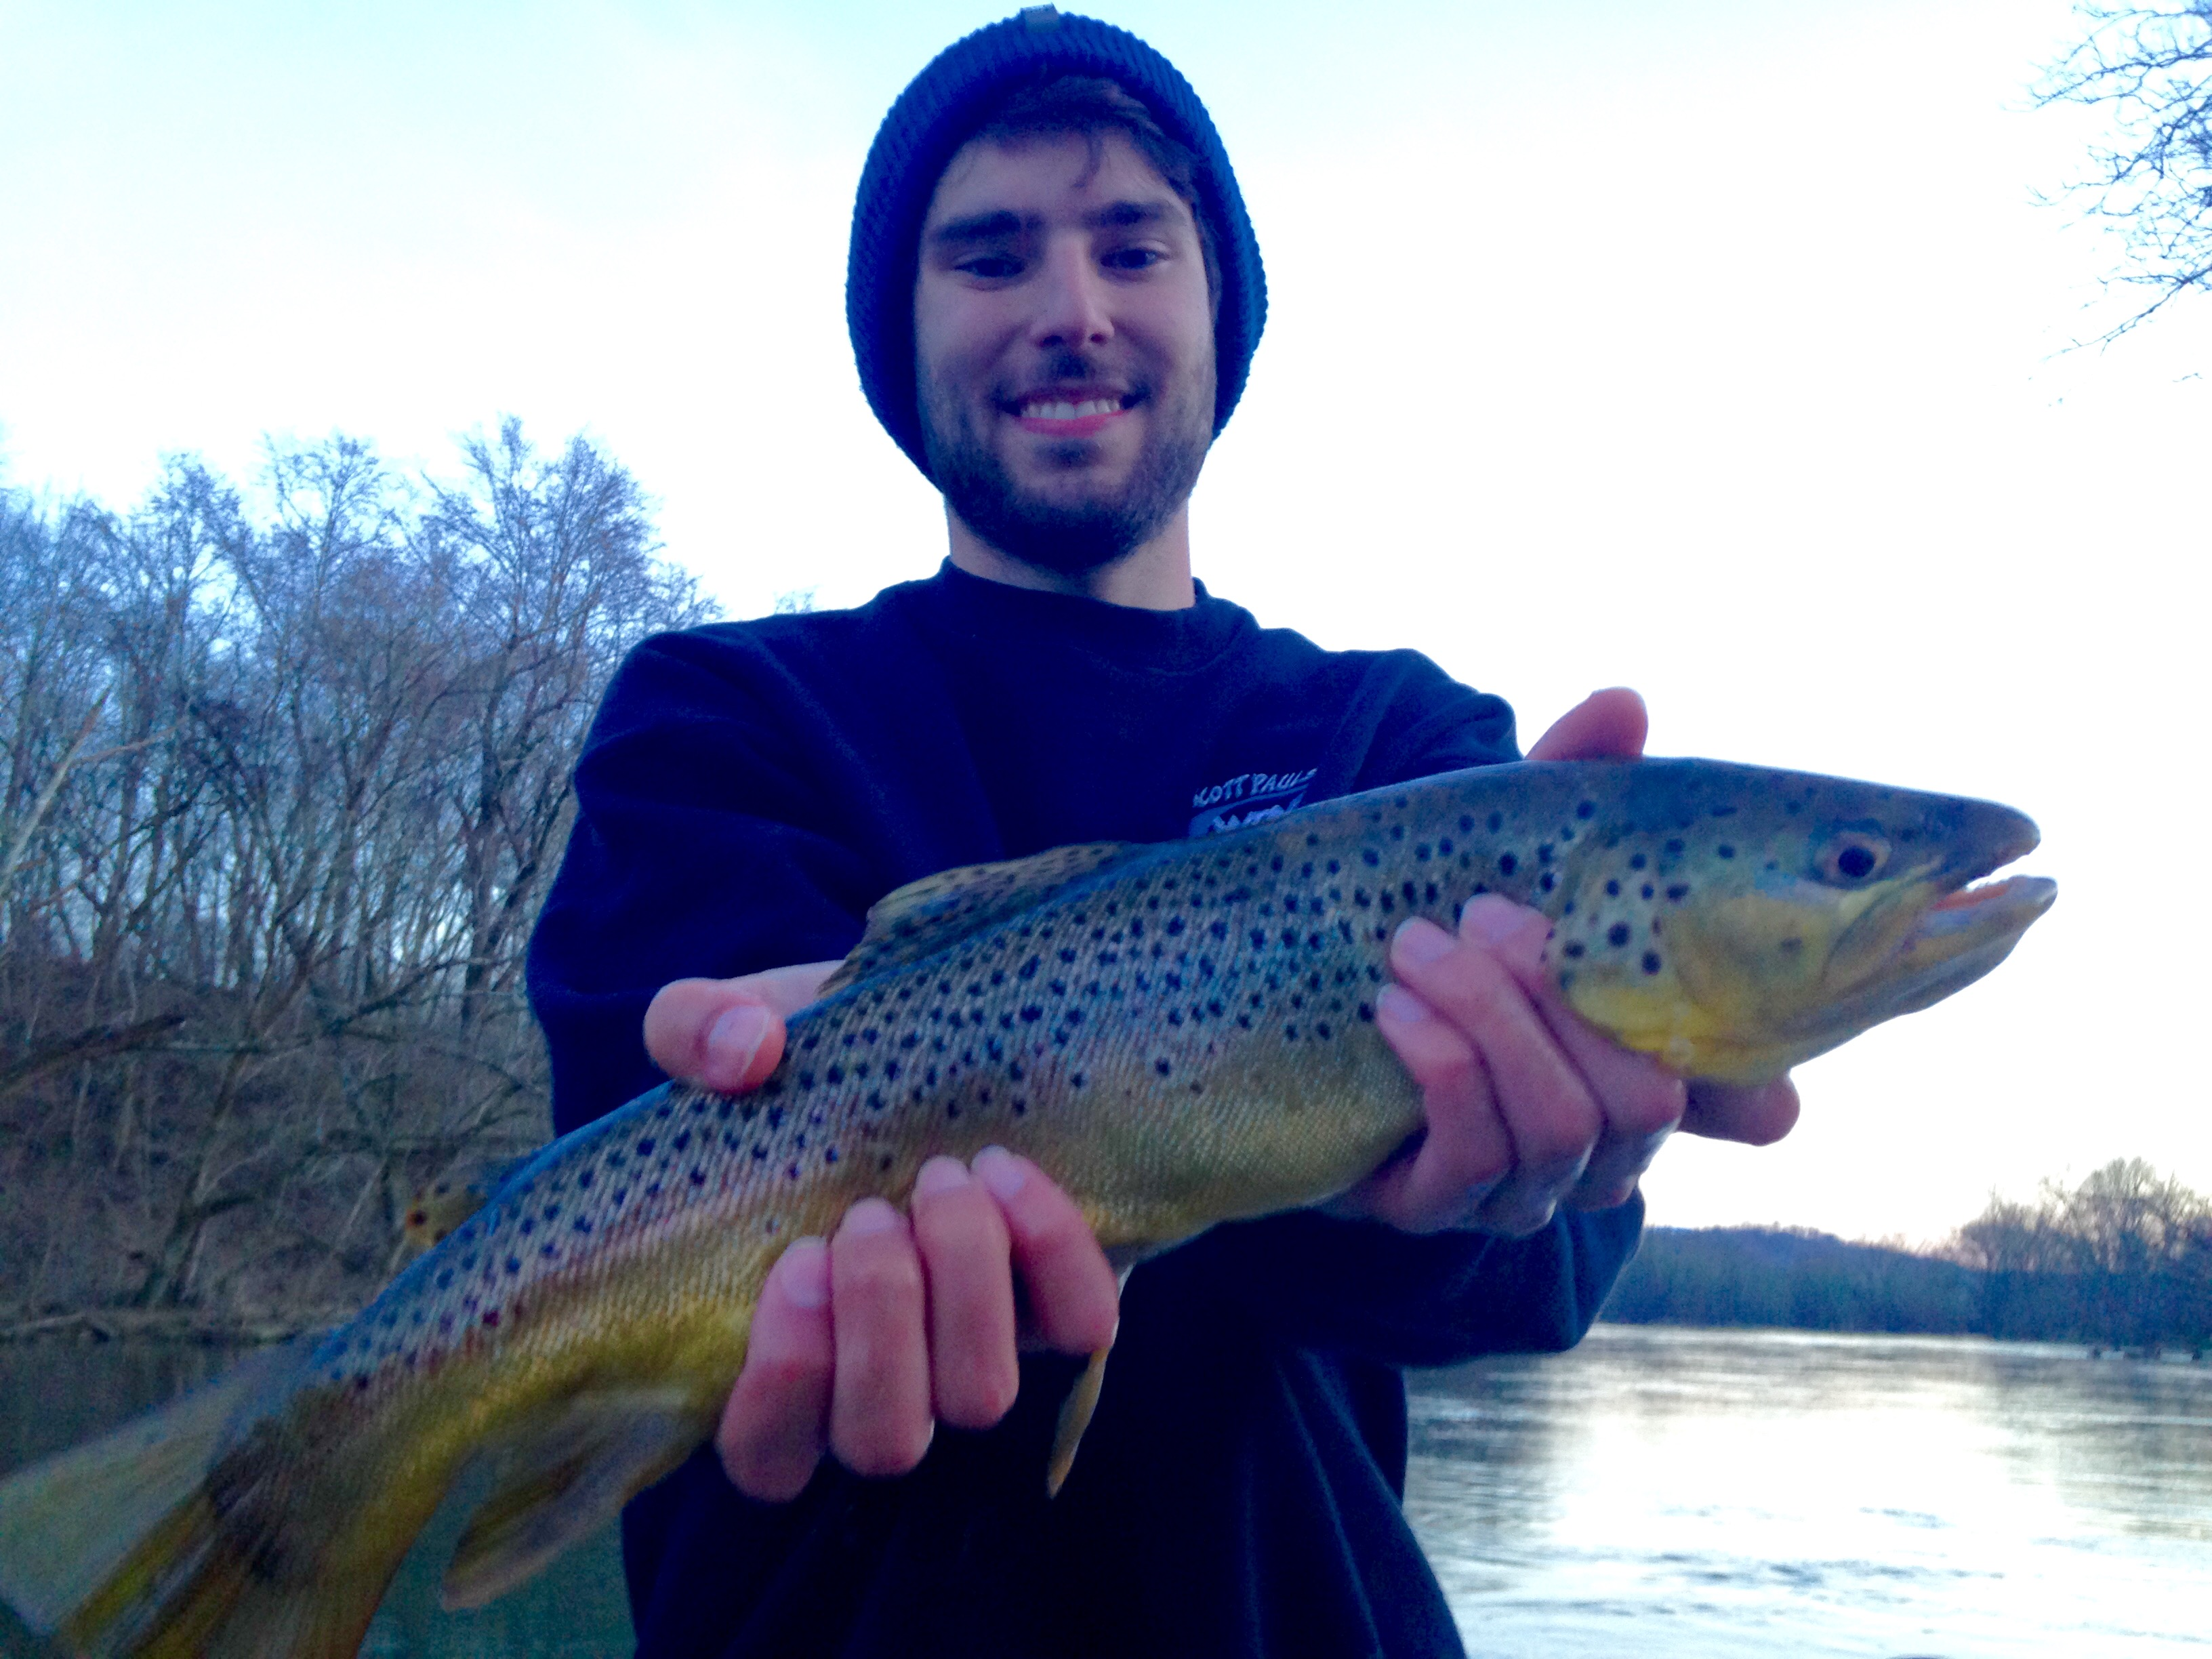 Jordan with a 20.5 inch Watauga River brown trout while fishing with Huck